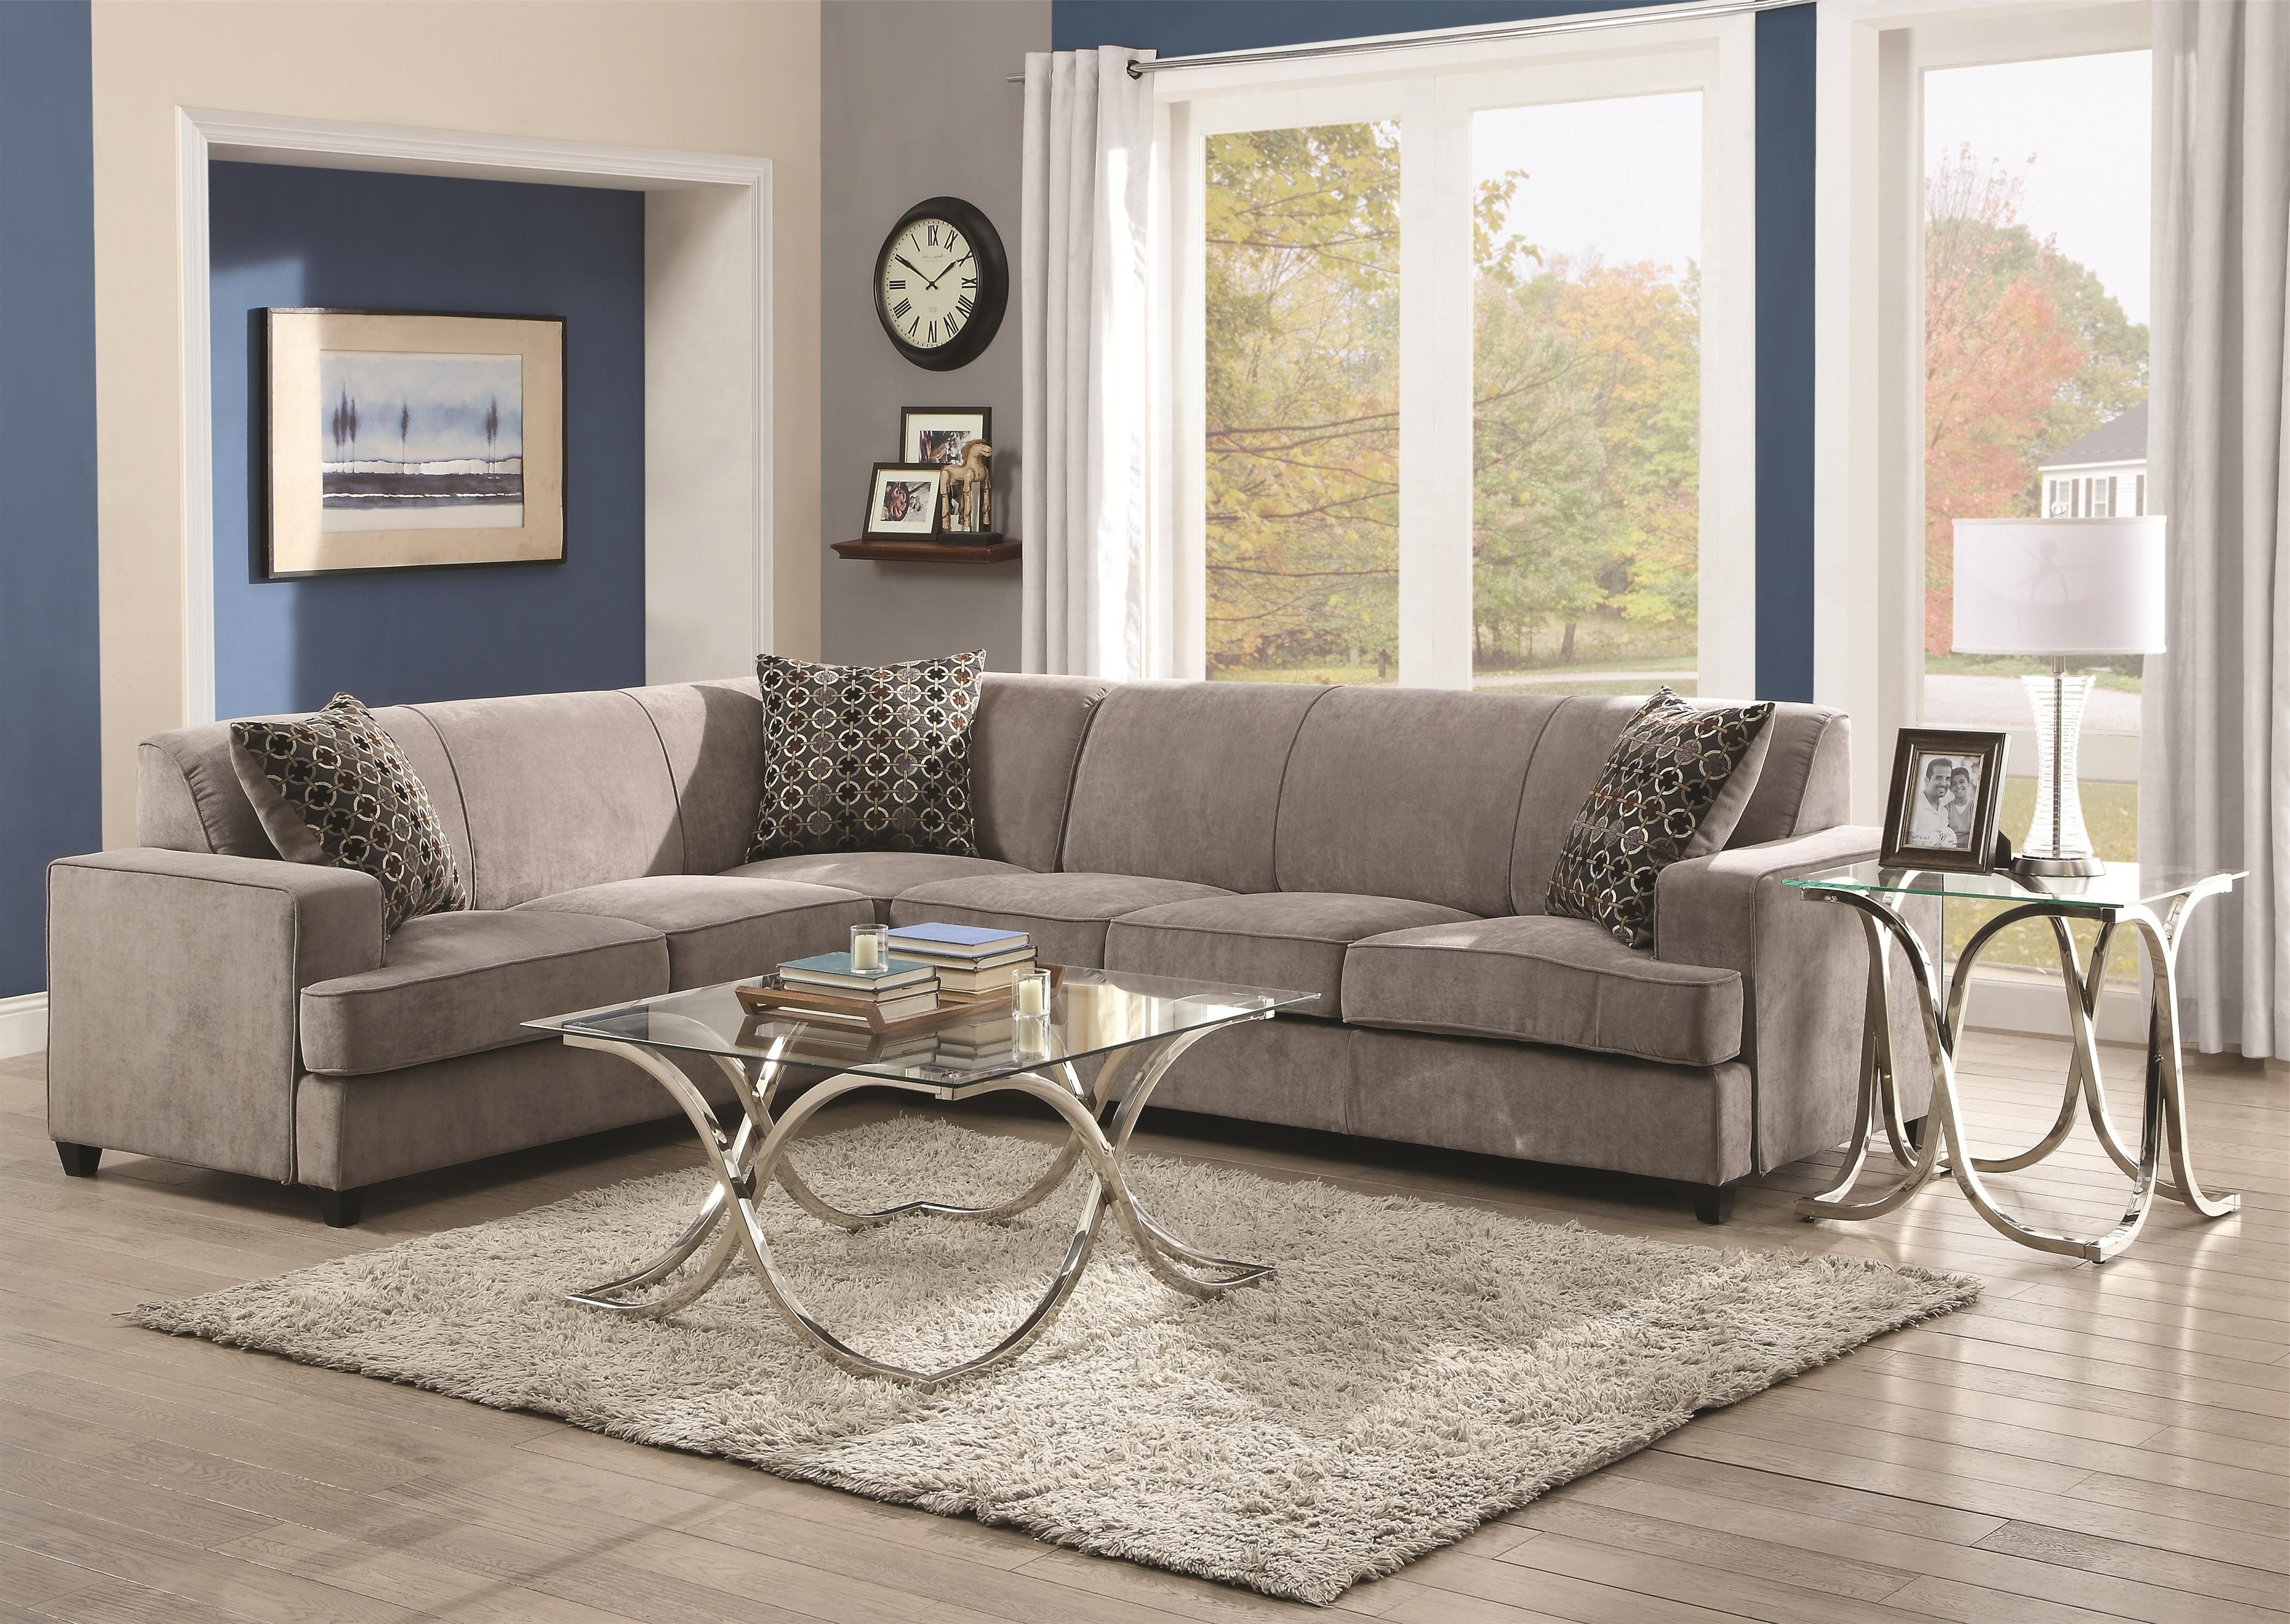 Tess Sectional Sofa For Cornerscoaster (View 15 of 20)